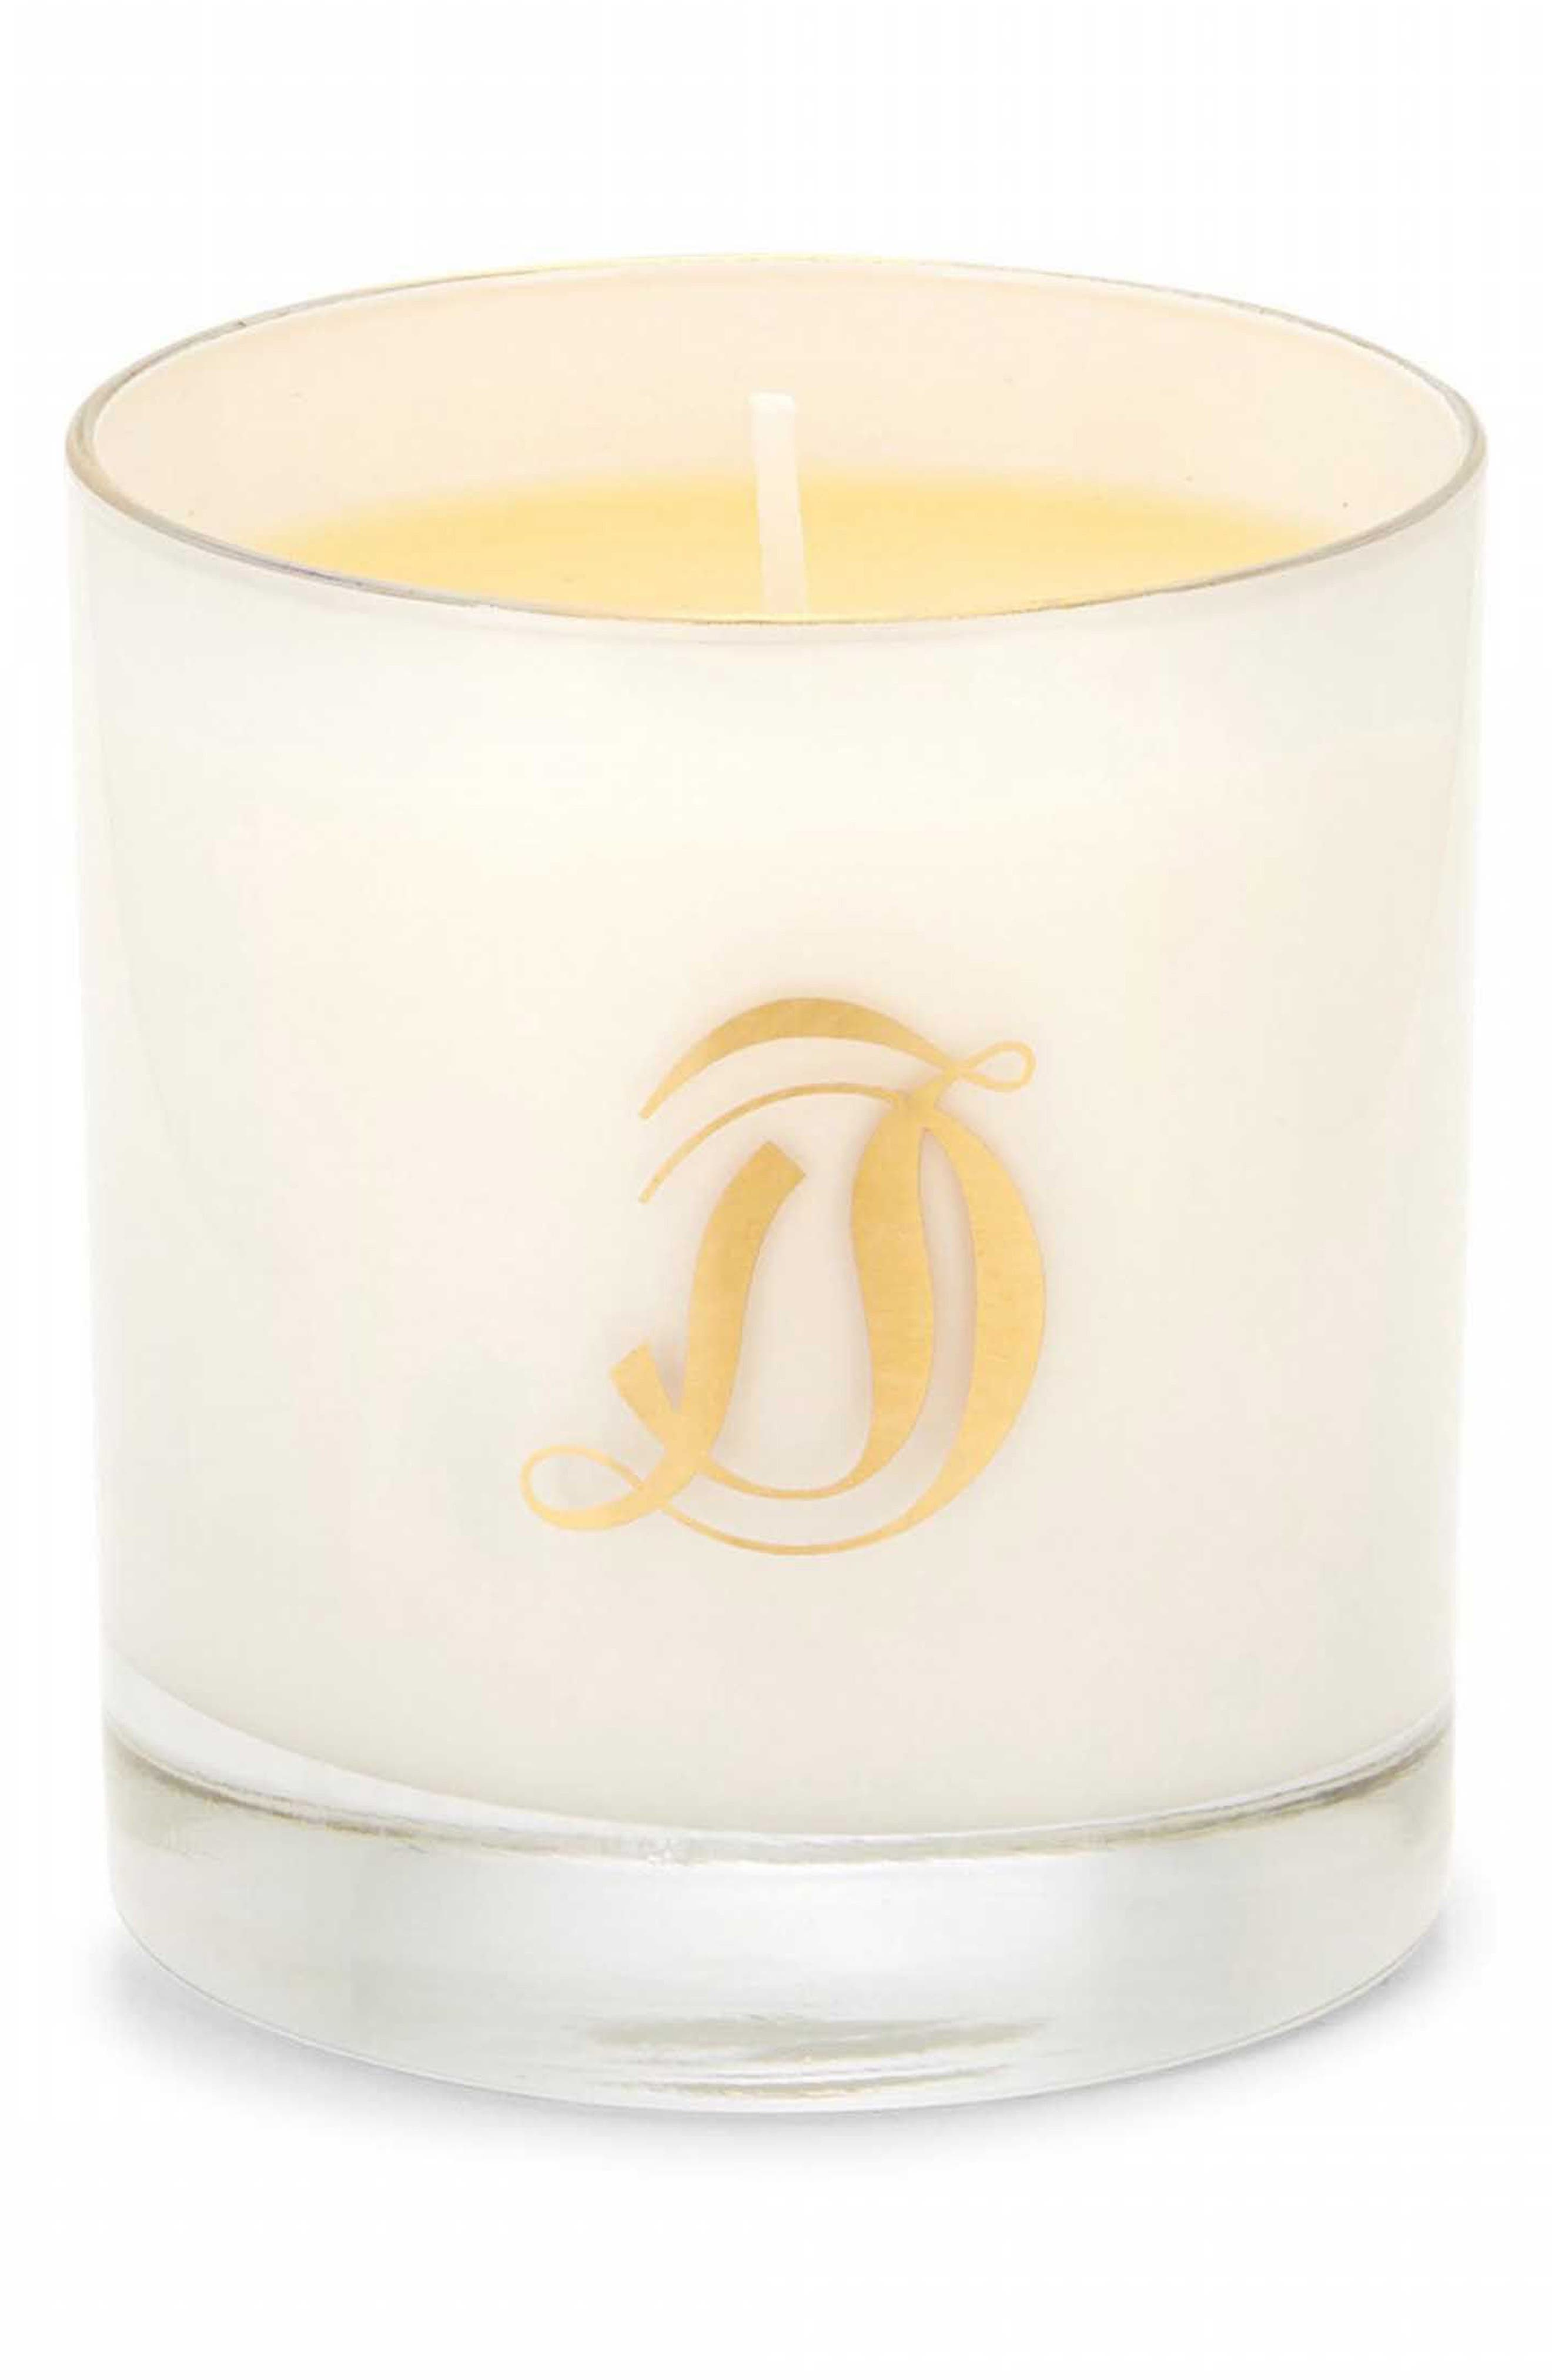 x Votivo Scented Boxed Candle,                             Main thumbnail 1, color,                             WILDWOOD FLOWER